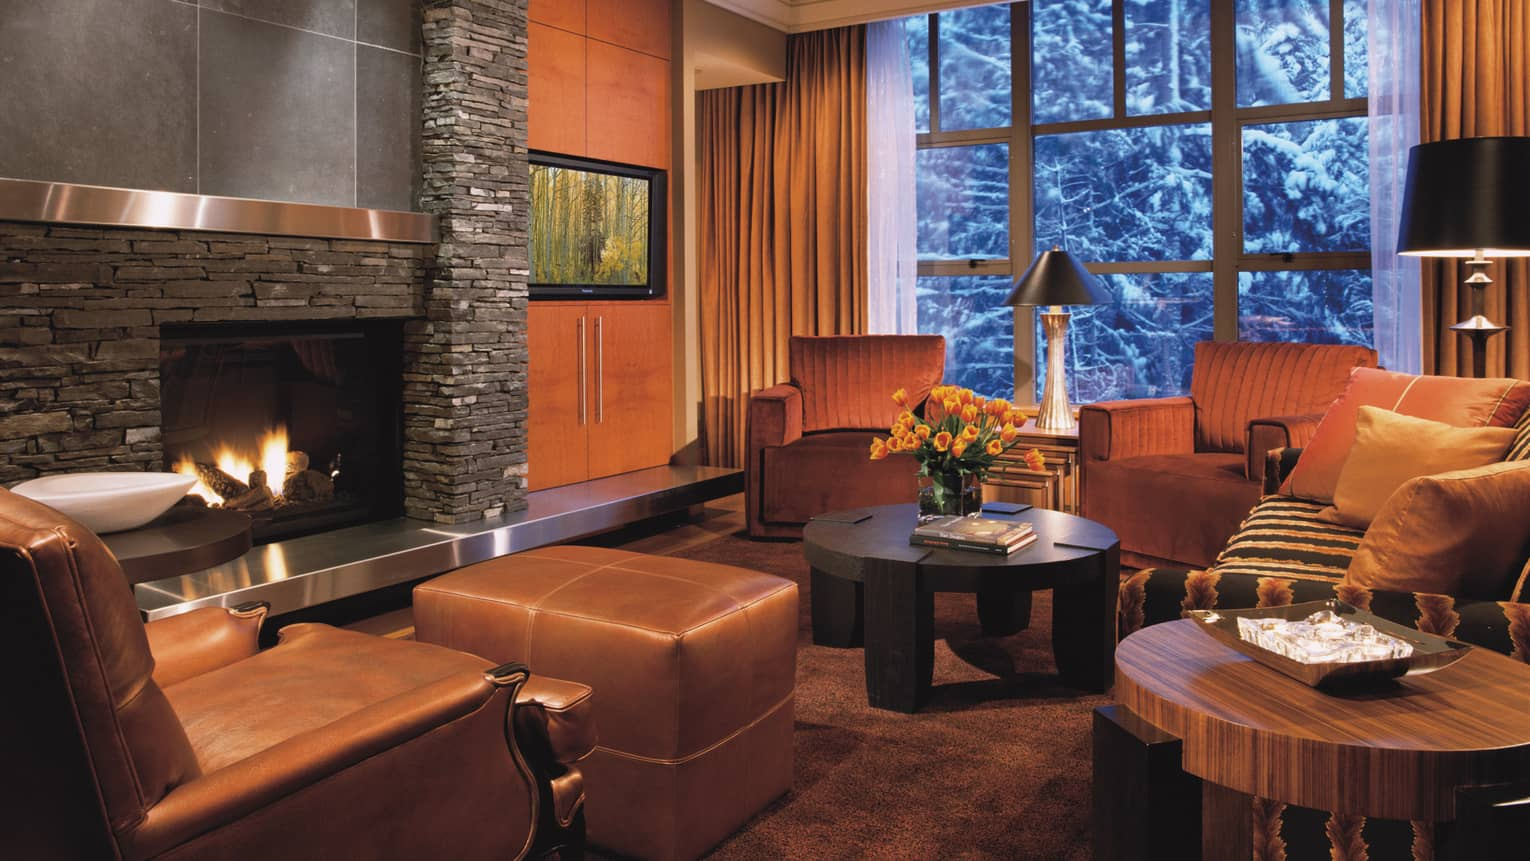 Brown leather armchair, stool and seating area in front of modern gas fireplace, large window